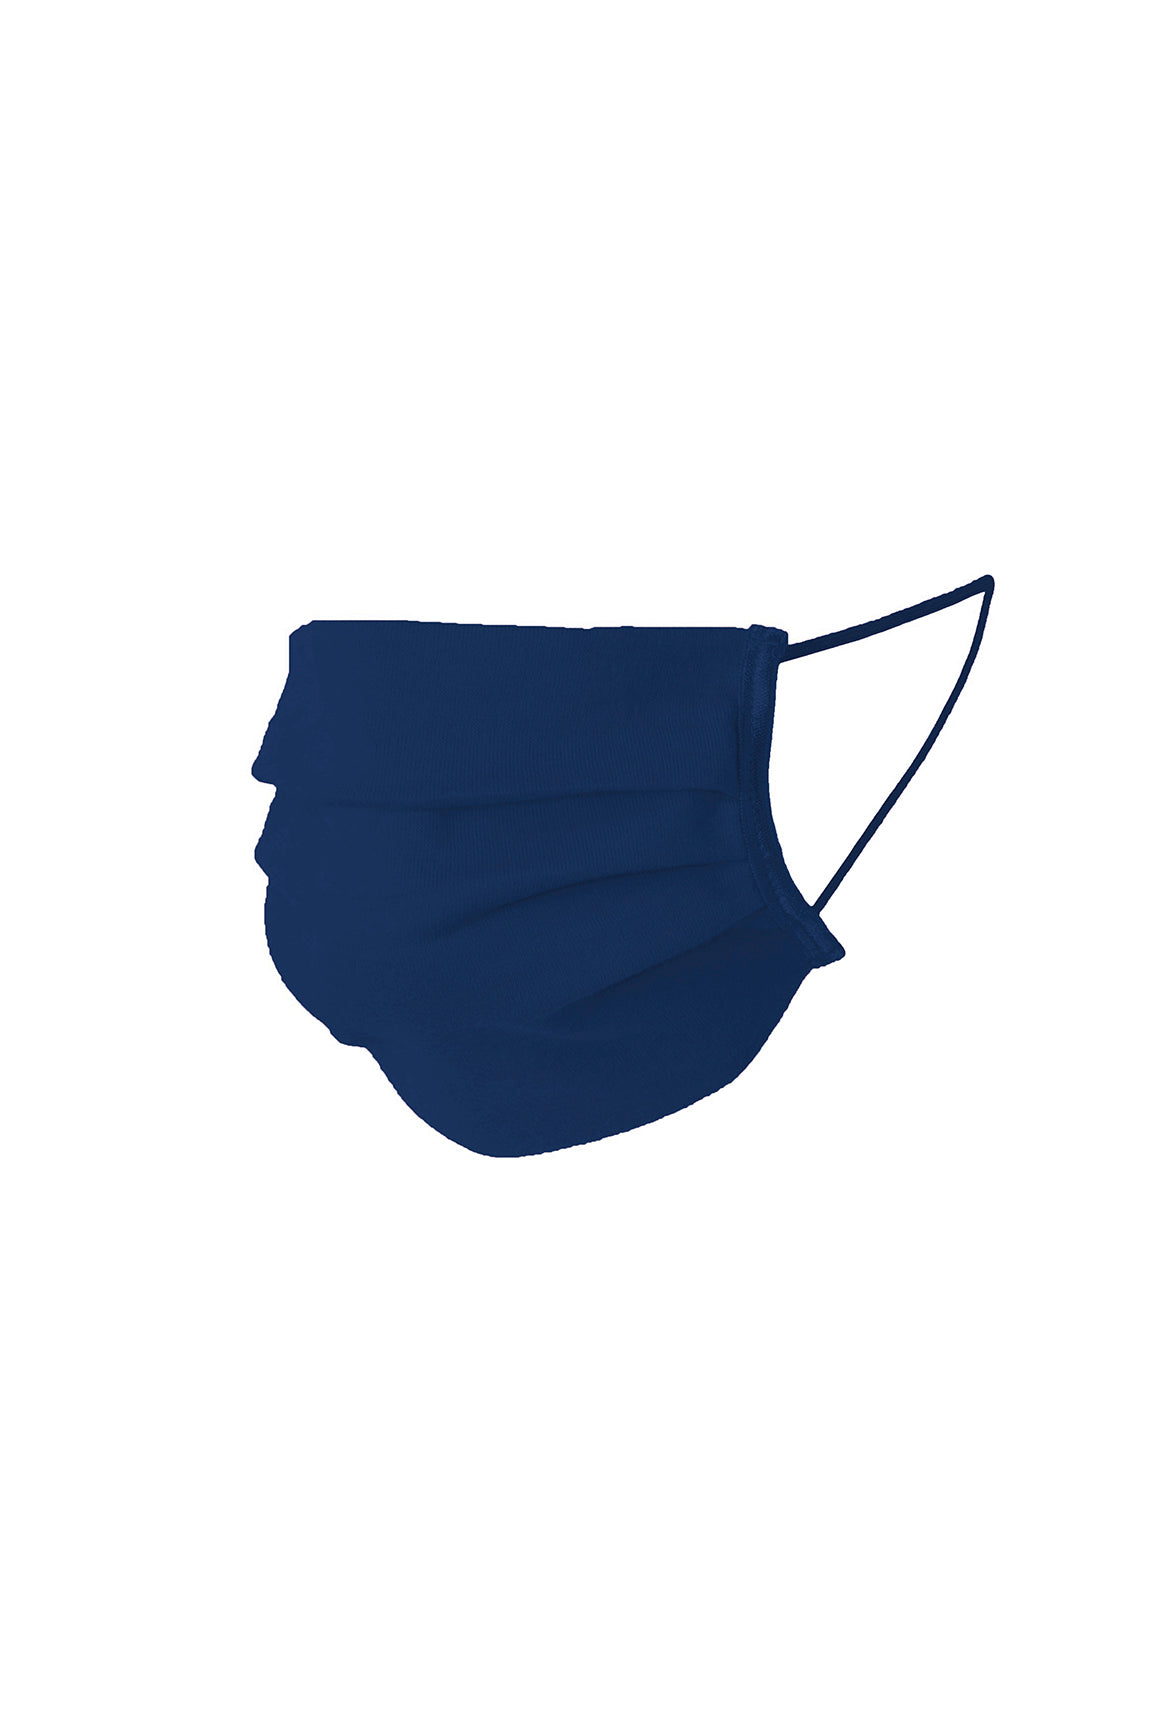 Maria Mask in Navy Blue - I.D. Sarrieri